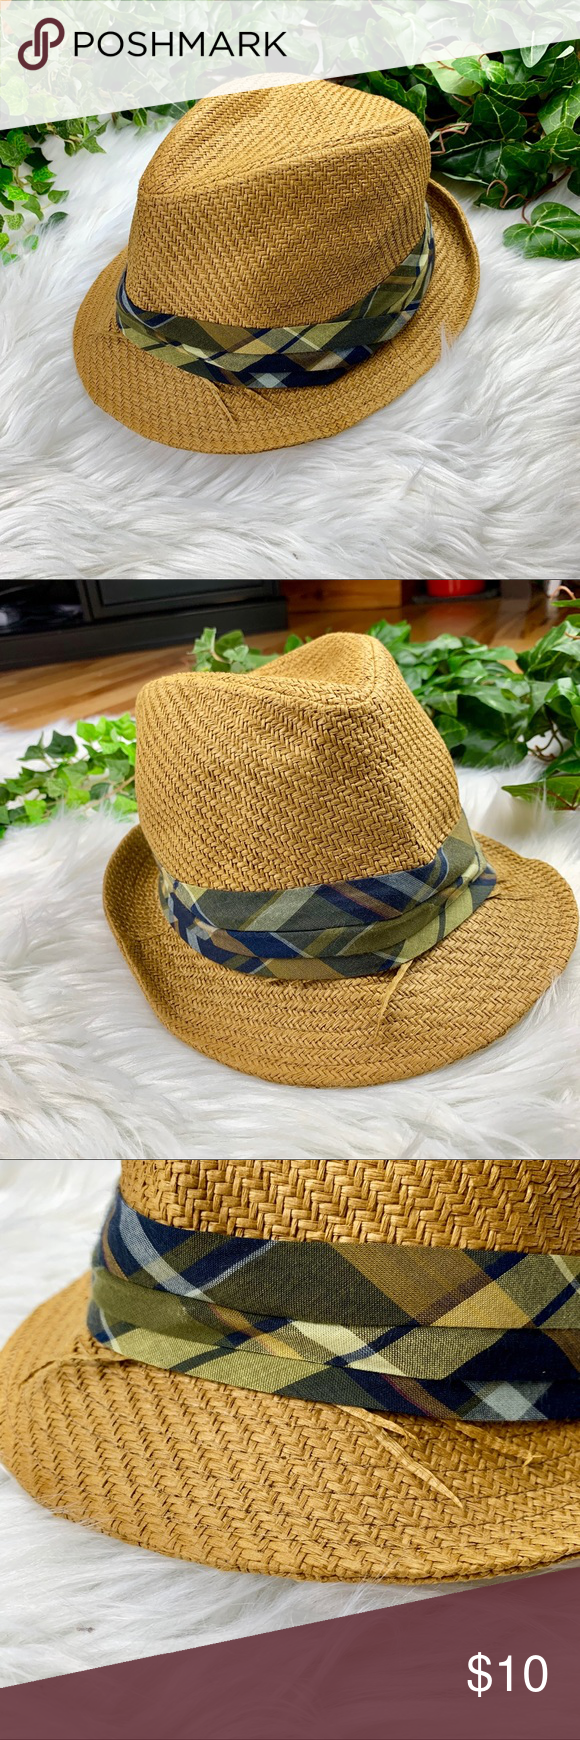 651c926ae4633 Plaid Band Straw Fedora Hat Women s Fully Lined Excellent Preowned  Condition. Unworn. Paper Straw Hat with green plaid band from Universal  Thread by Target.